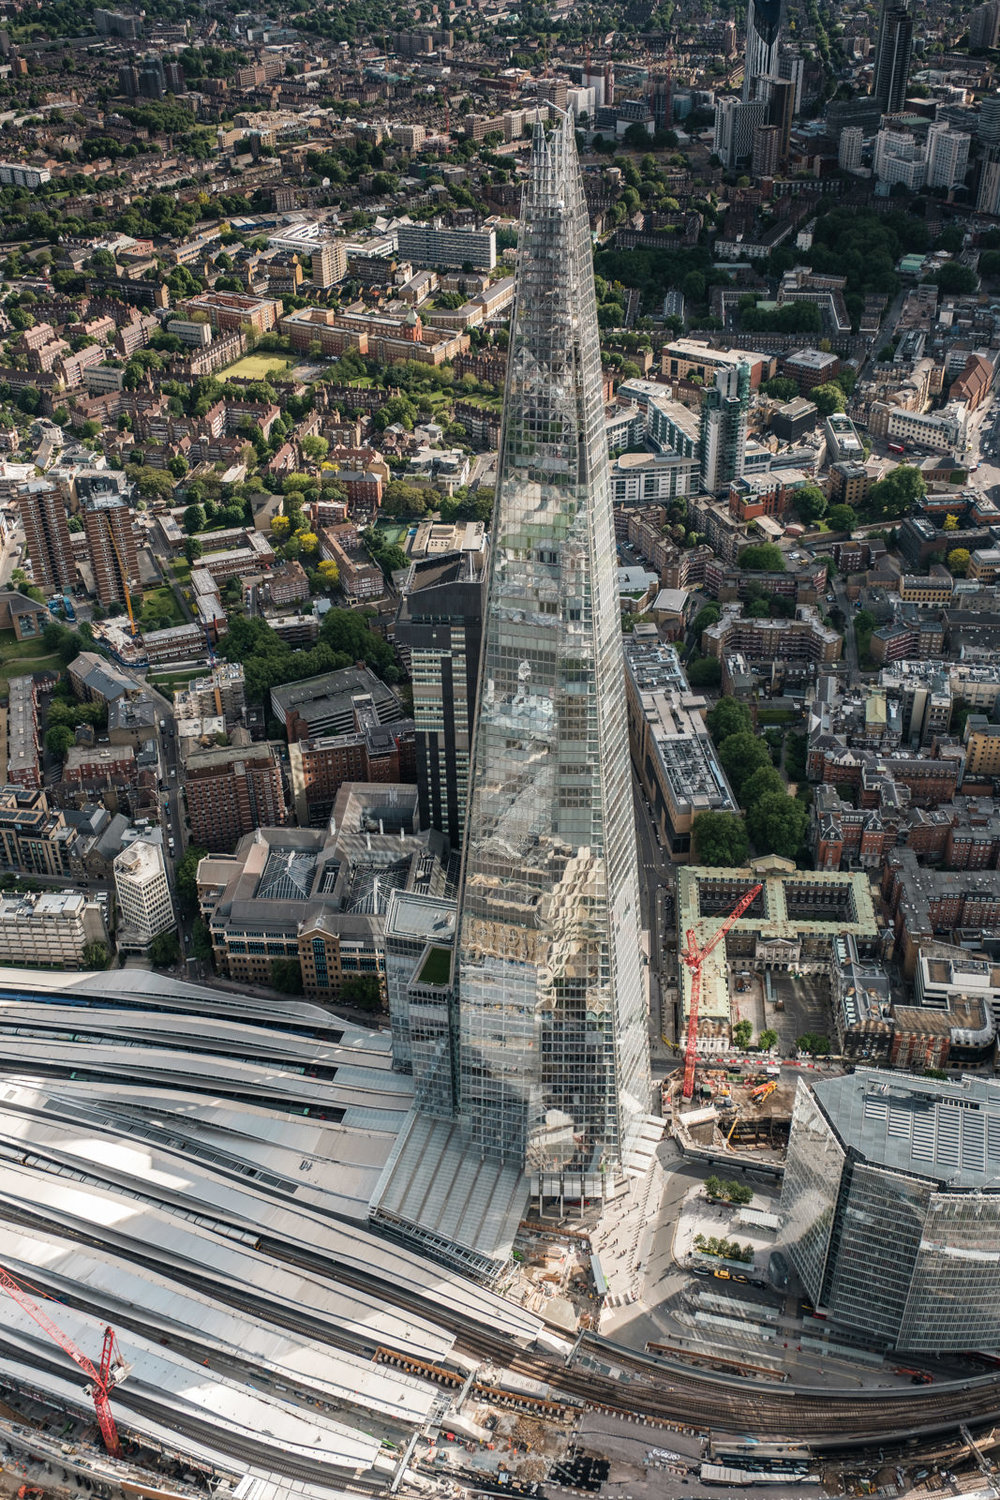 Chameleon - The Shard - with 16-55mm f2.8 @23mm, f4, iso320, 1/1000s